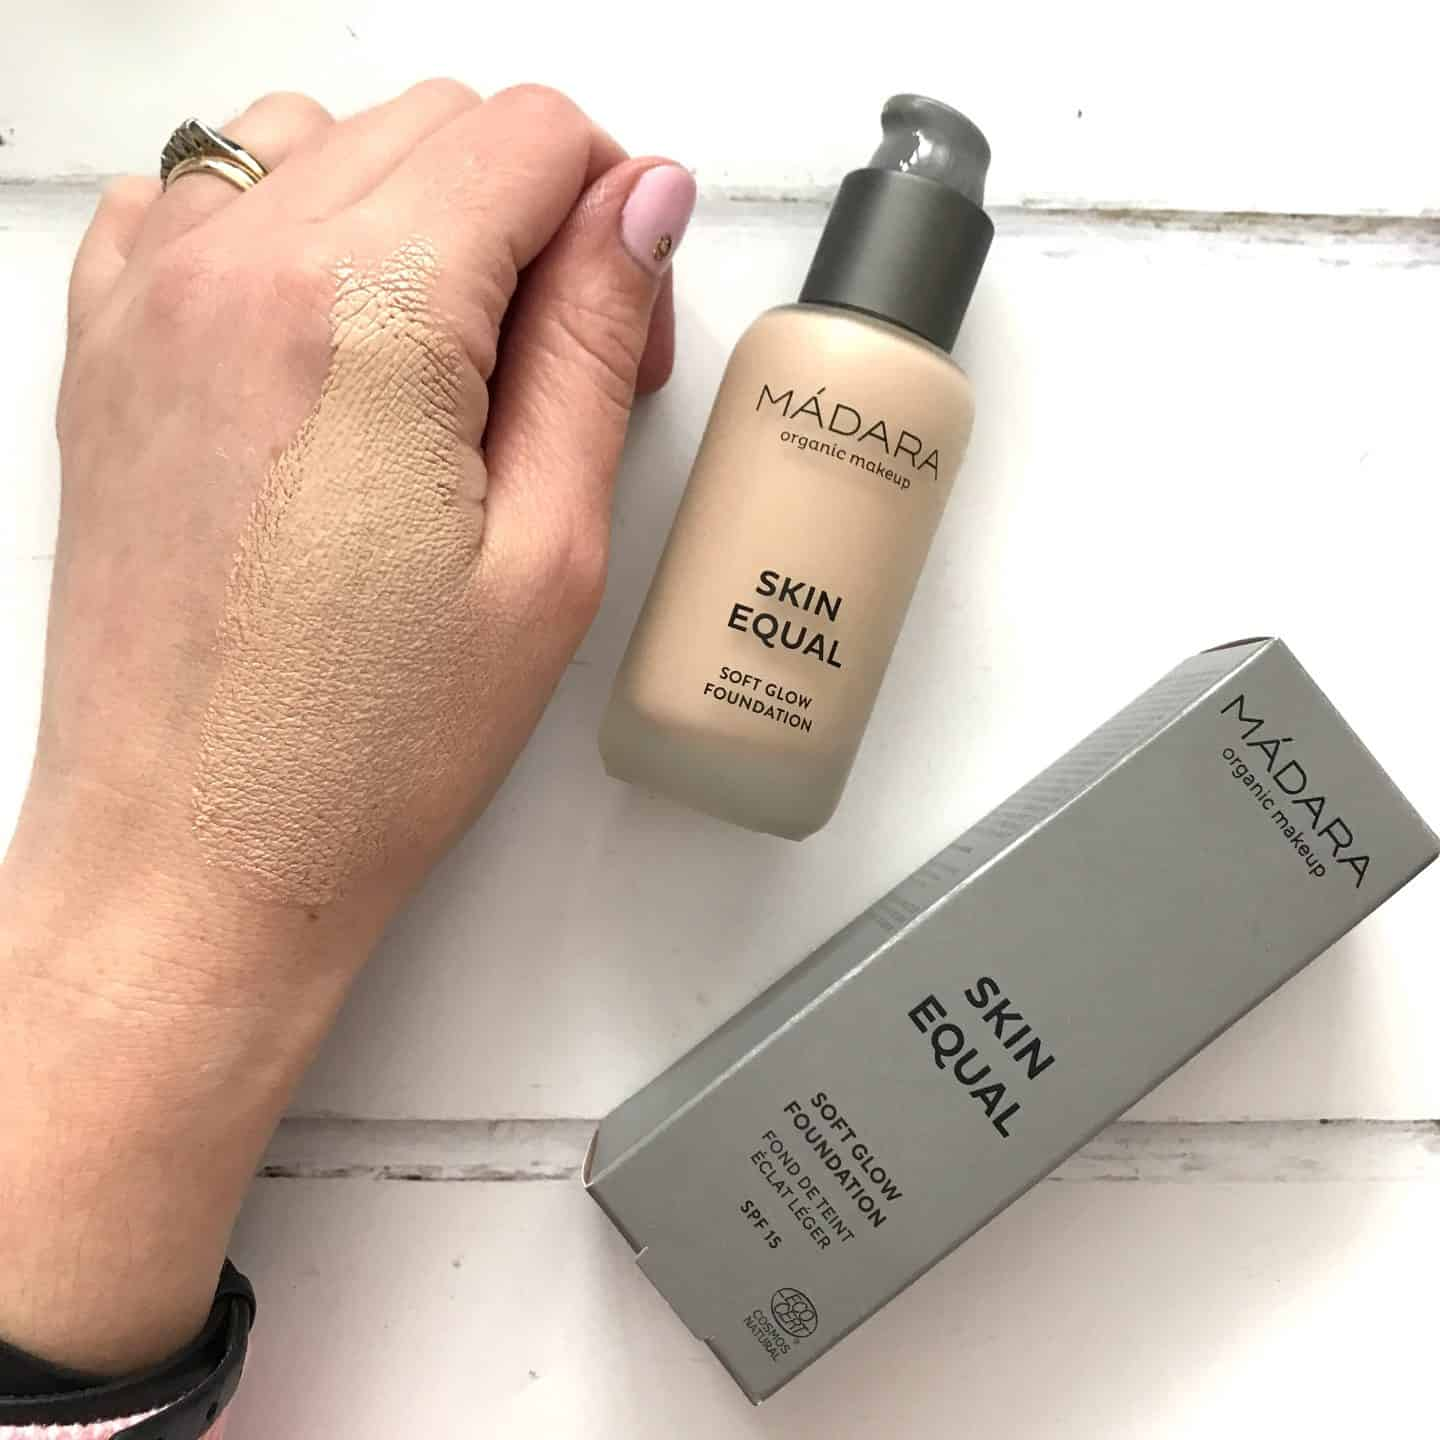 Madara Skin Equal Soft Glow Foundation SPF15 swatch on hand blended